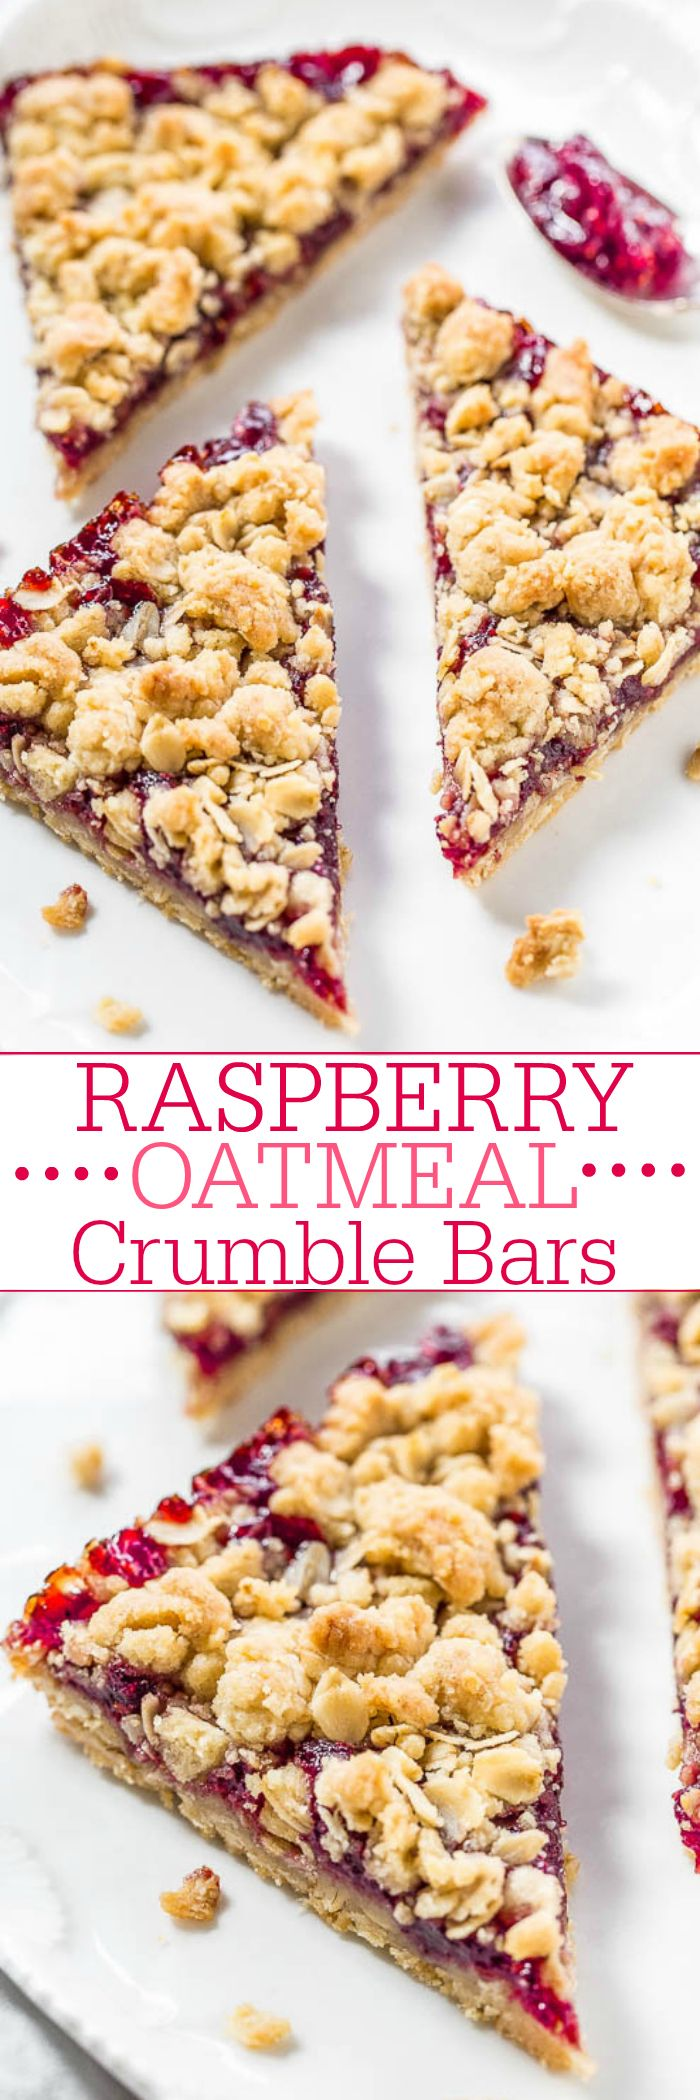 Raspberry Oatmeal Crumble Bars - Fast, easy, no-mixer bars great for breakfast, snacks, or a healthy dessert!! The big crumbles are irresistible! Fresh raspberries not needed so you can make the bars year round!! ~ Averie Cooks